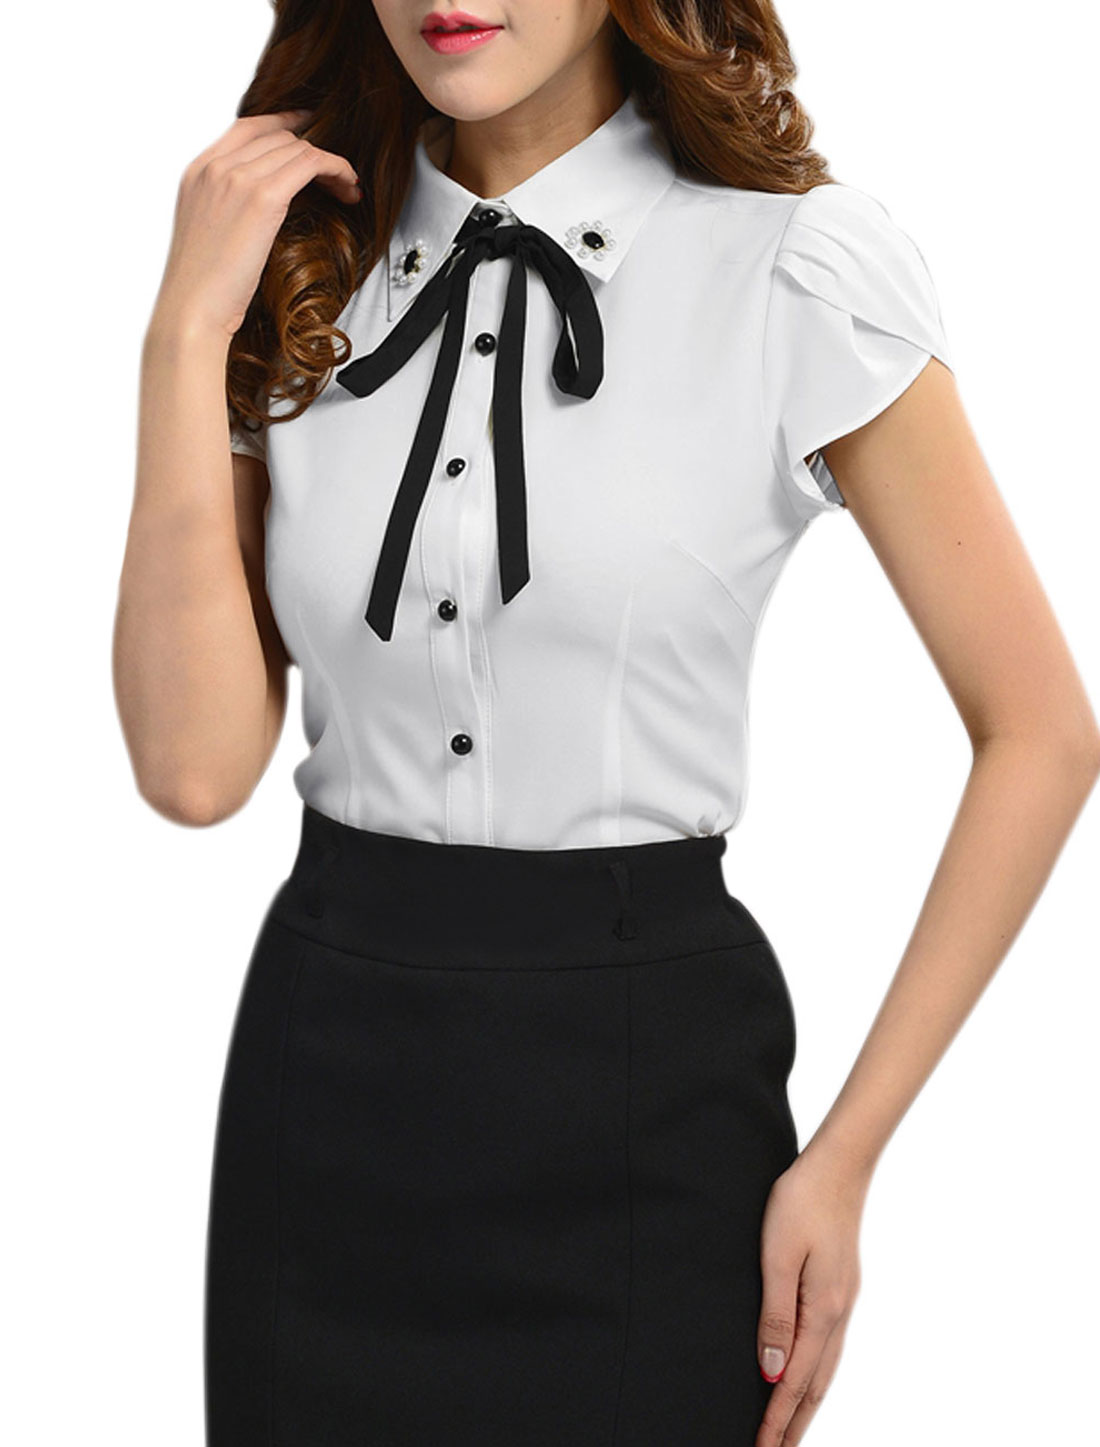 Lady Petal Sleeve Plastic Pearls Decor Shirt w Self Tie Strap White M